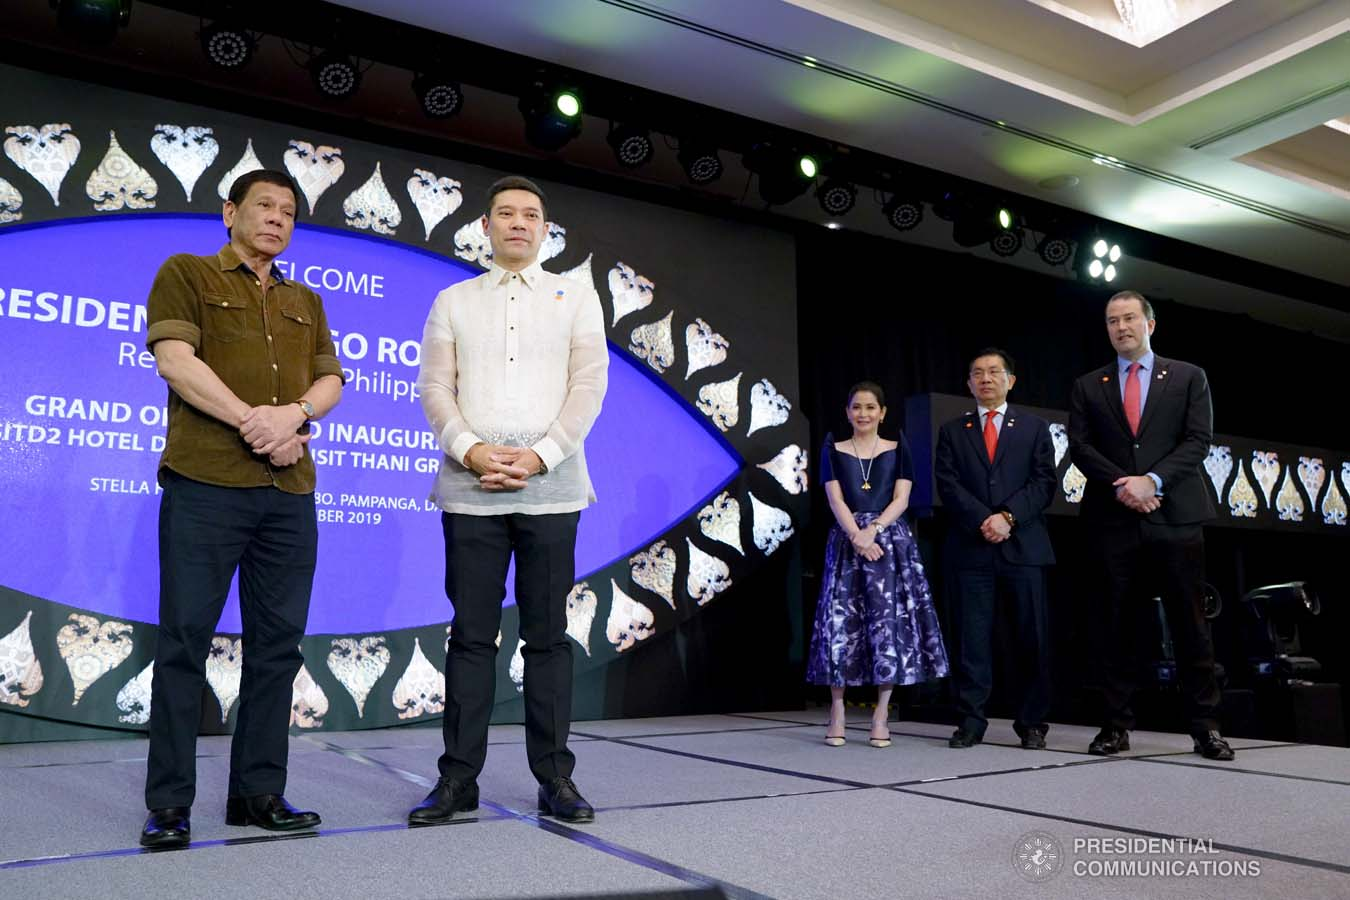 President Rodrigo Roa Duterte and Torre Lorenzo Development Corporation (TLDC) CEO Tomas Lorenzo pose for posterity during the inauguration of the Dusit D2 Davao Hotel in Davao City on September 6, 2019. JOEY DALUMPINES/PRESIDENTIAL PHOTO